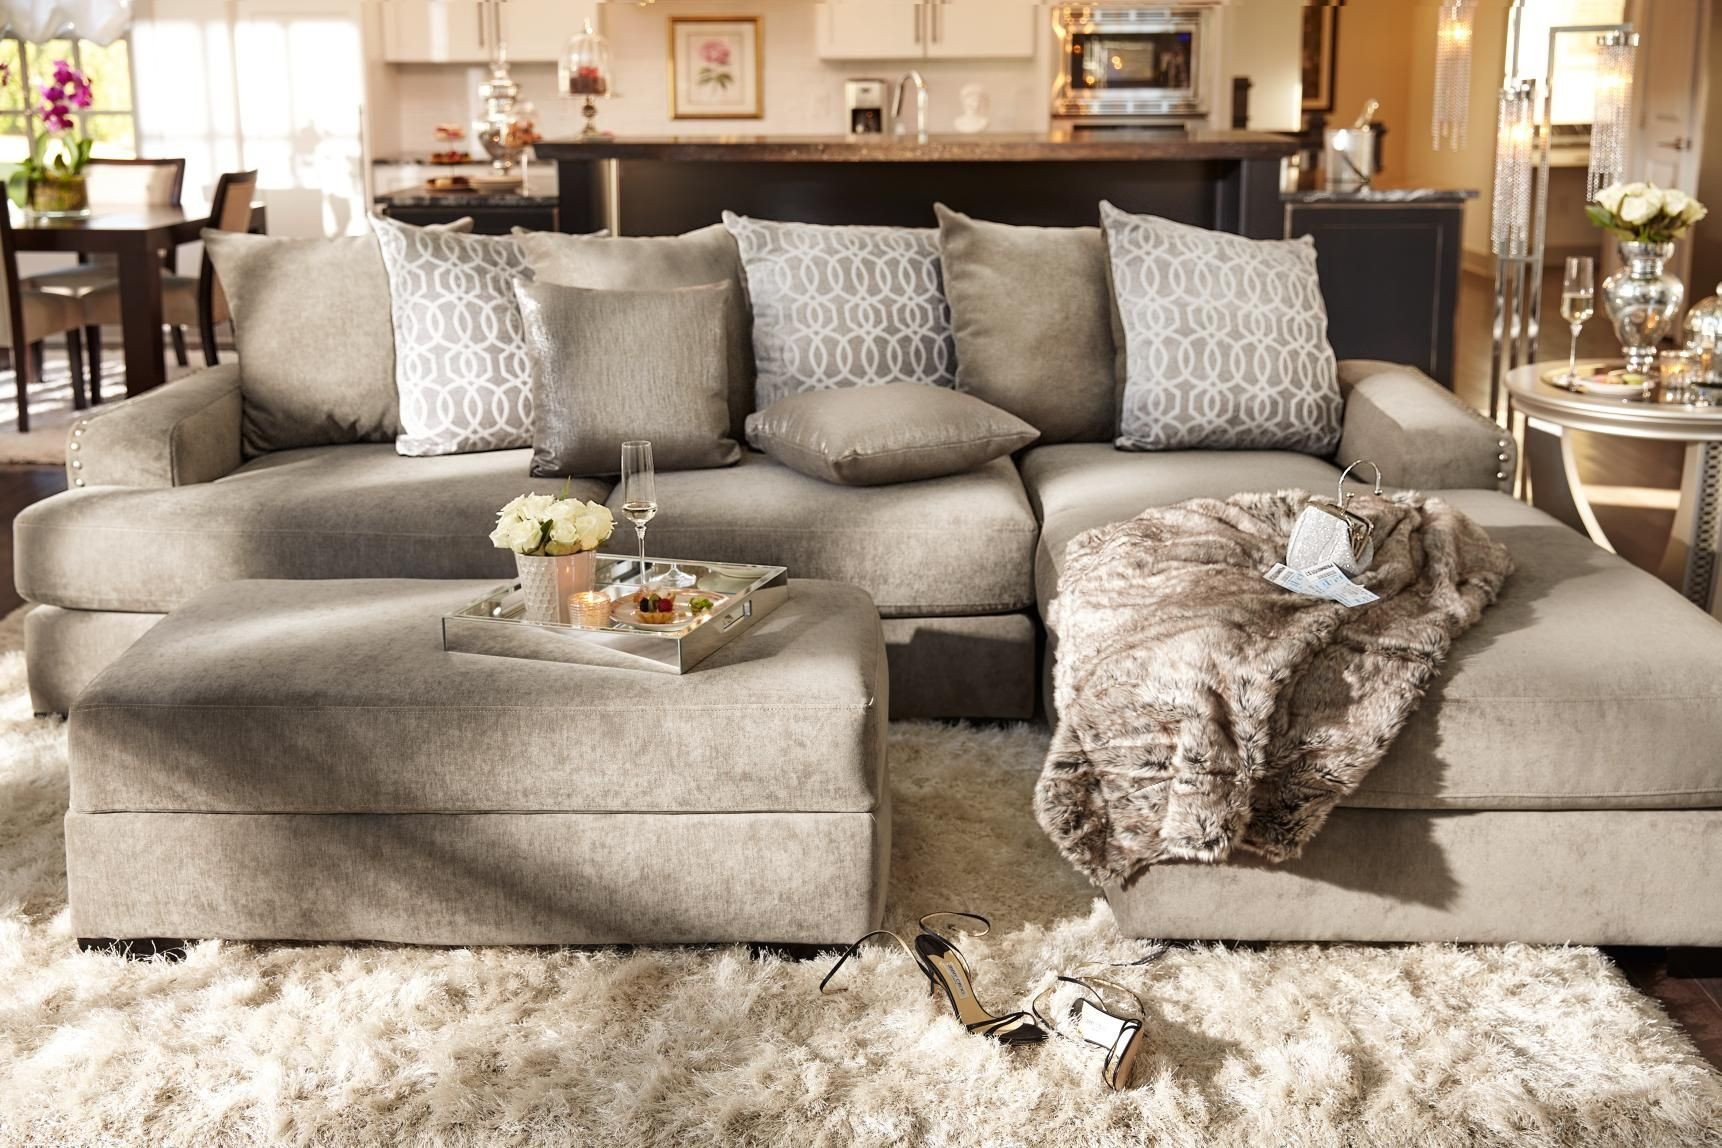 Living Room Decor with Sectional New Stay On Trend with the Uber Glam Tempo Collection with A